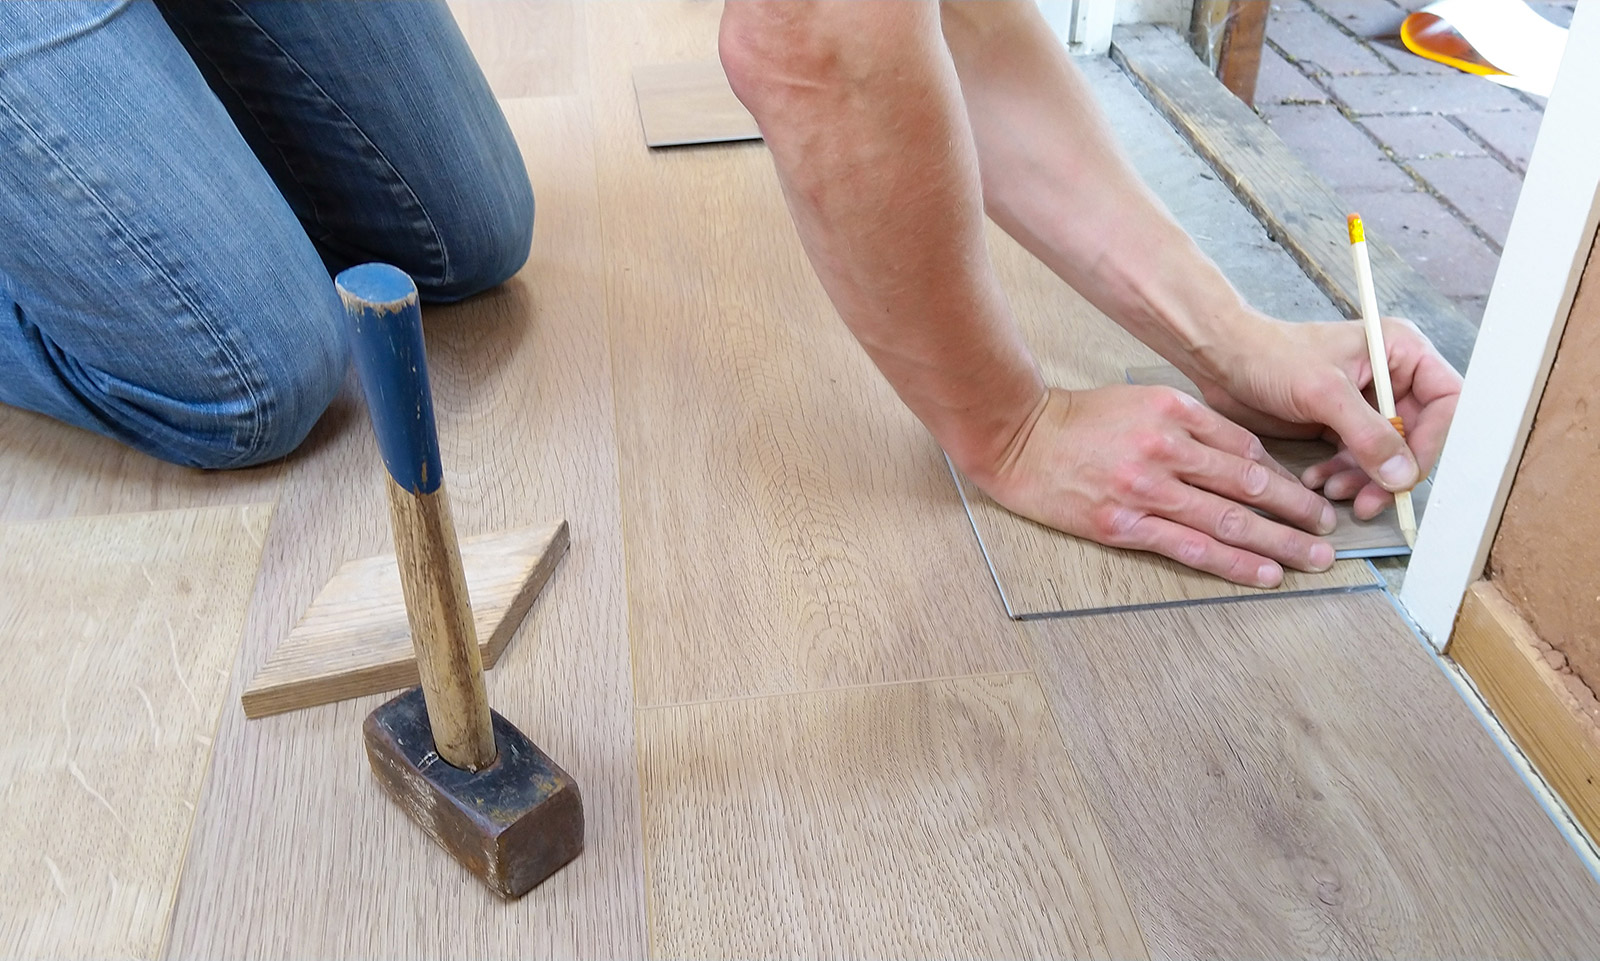 man measuring floor tile sizes